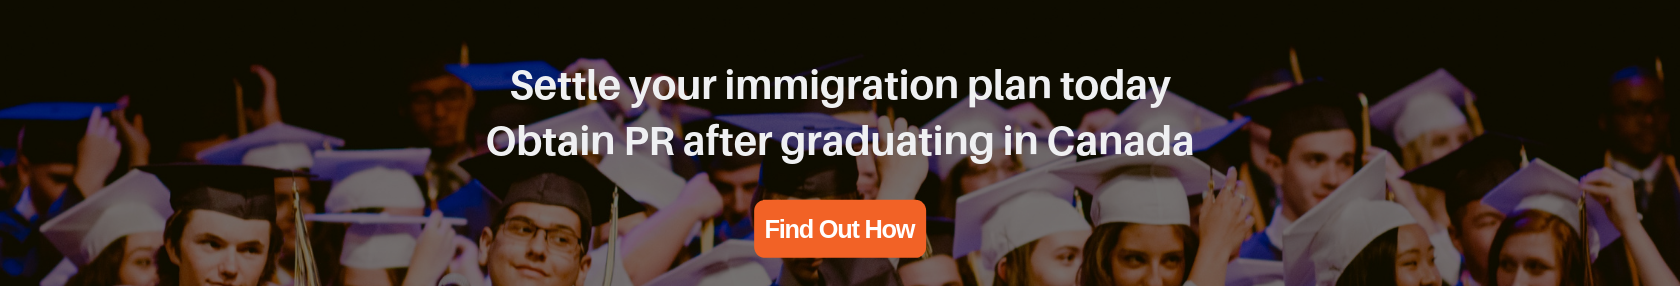 Alternative Canada Immigration Path - Higher Education